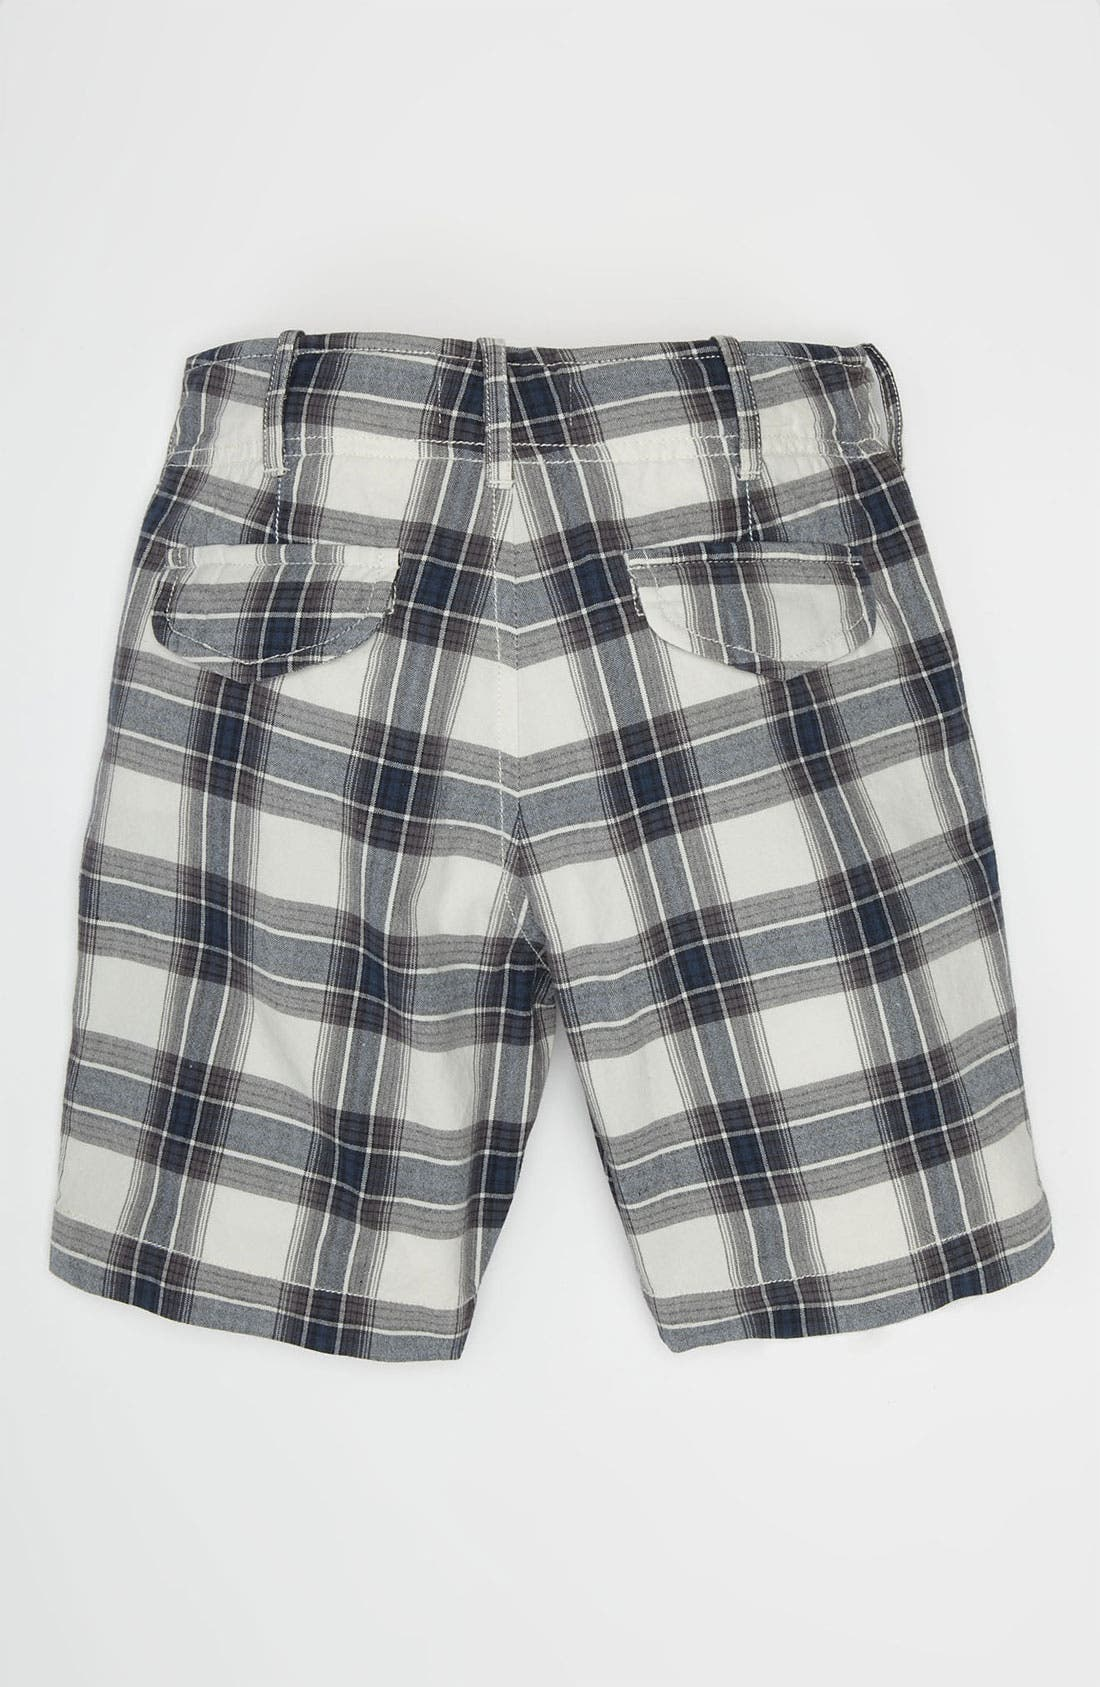 Alternate Image 2  - Peek 'Montauk Hampton' Shorts (Toddler, Little Boys & Big Boys)